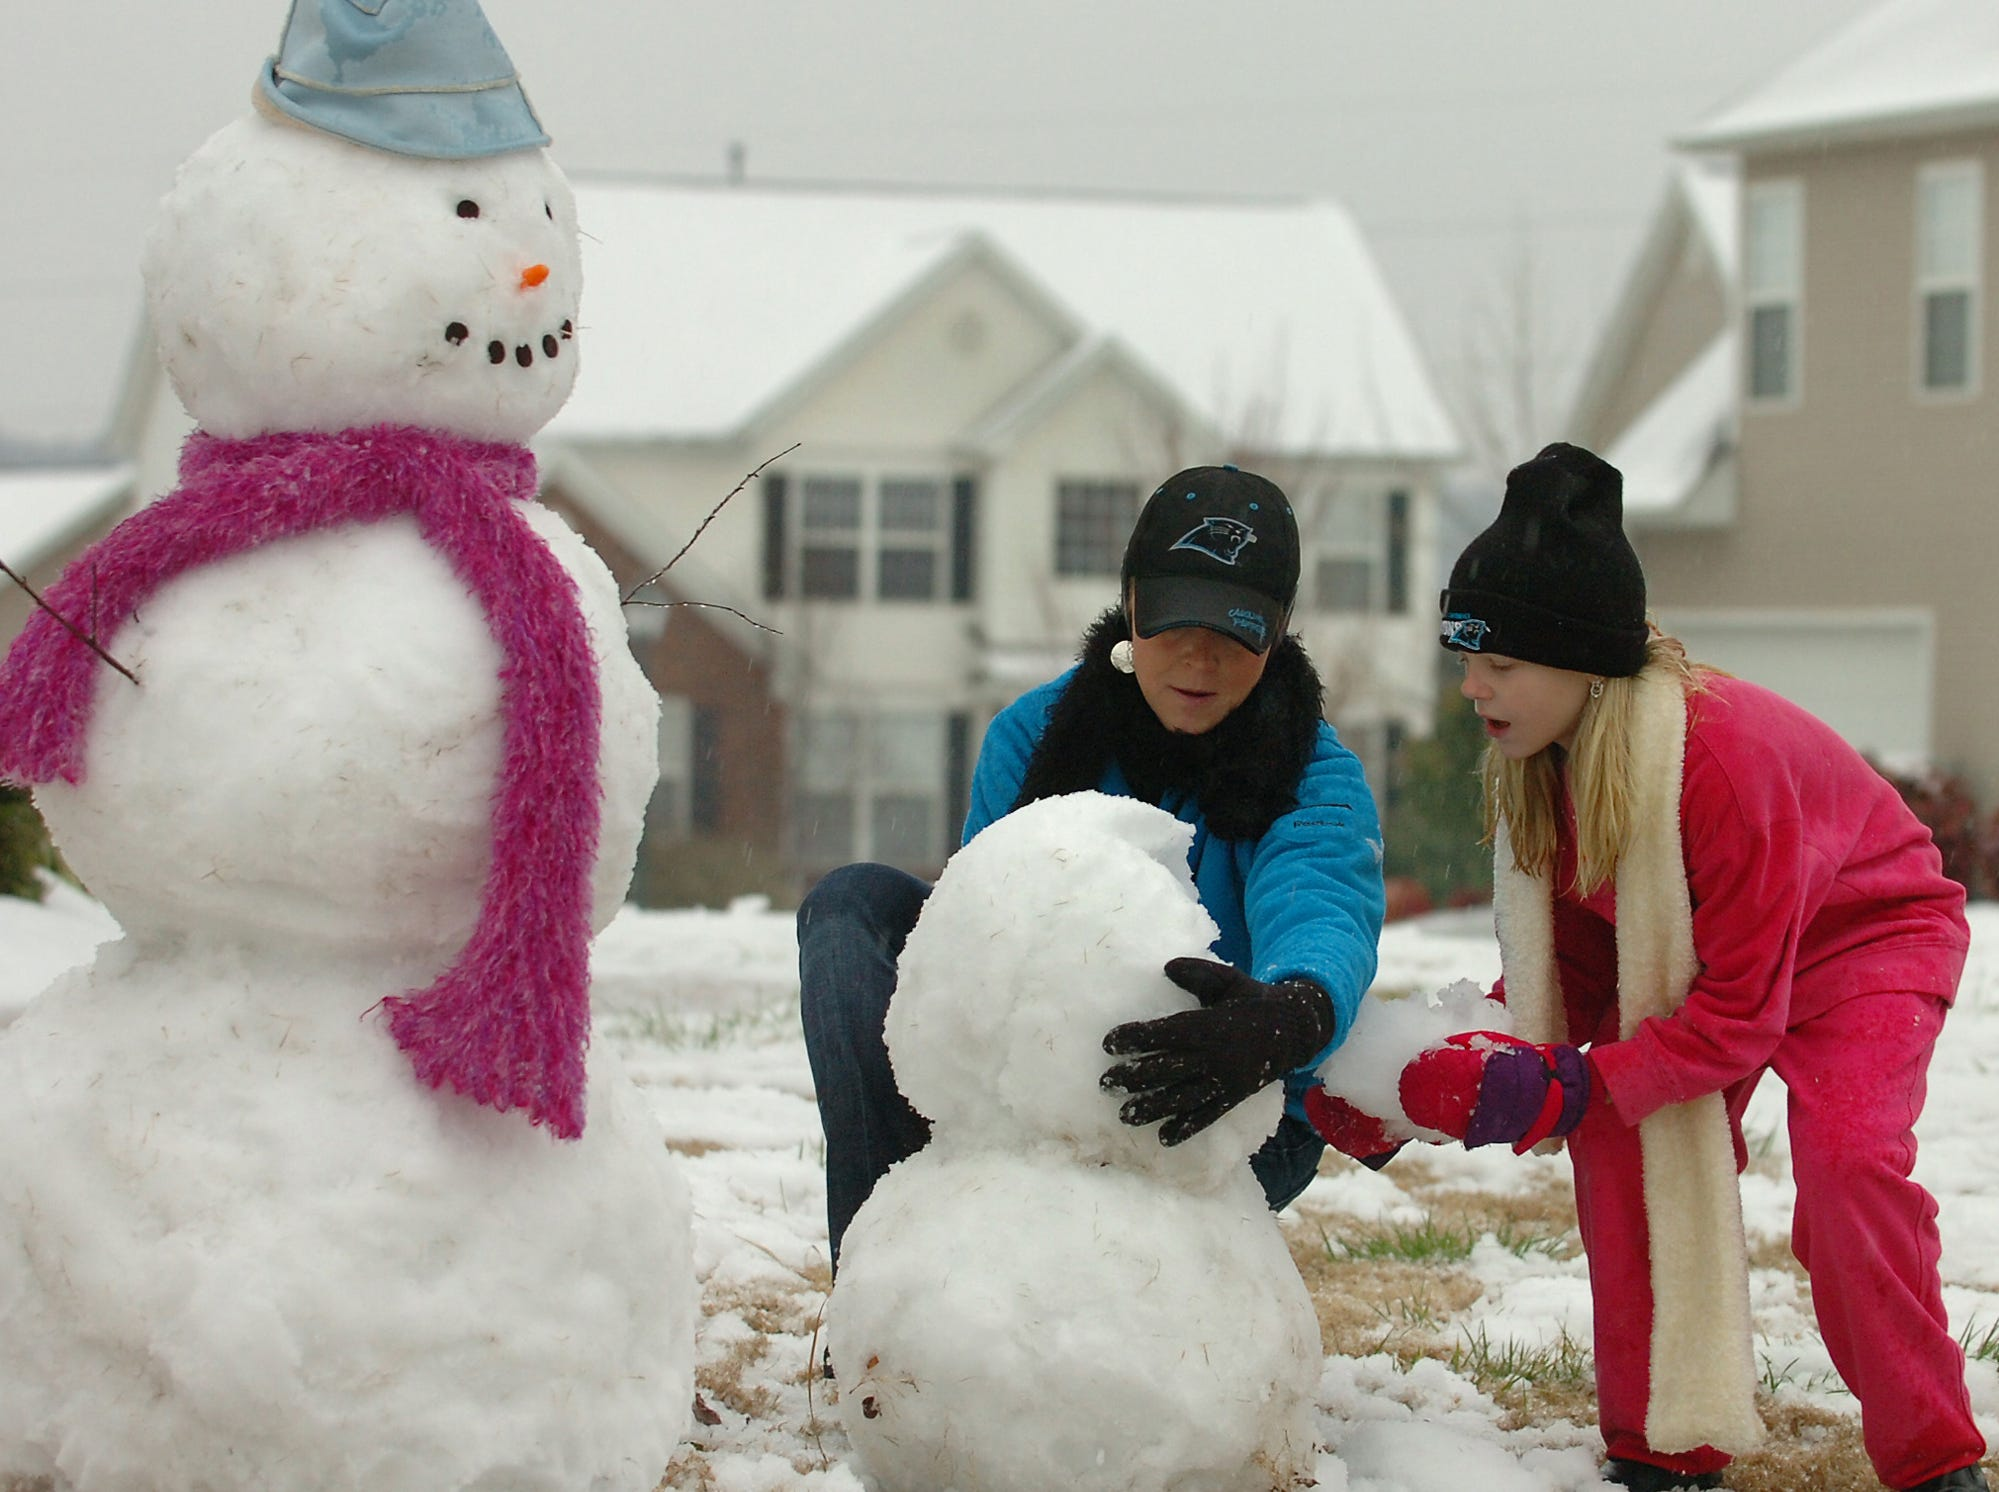 Tina Price and her daughter Brittany, 10, take advantage of the early snow and make a snow family in the front yard of their Mauldin home Thursday, February 1, 2007.